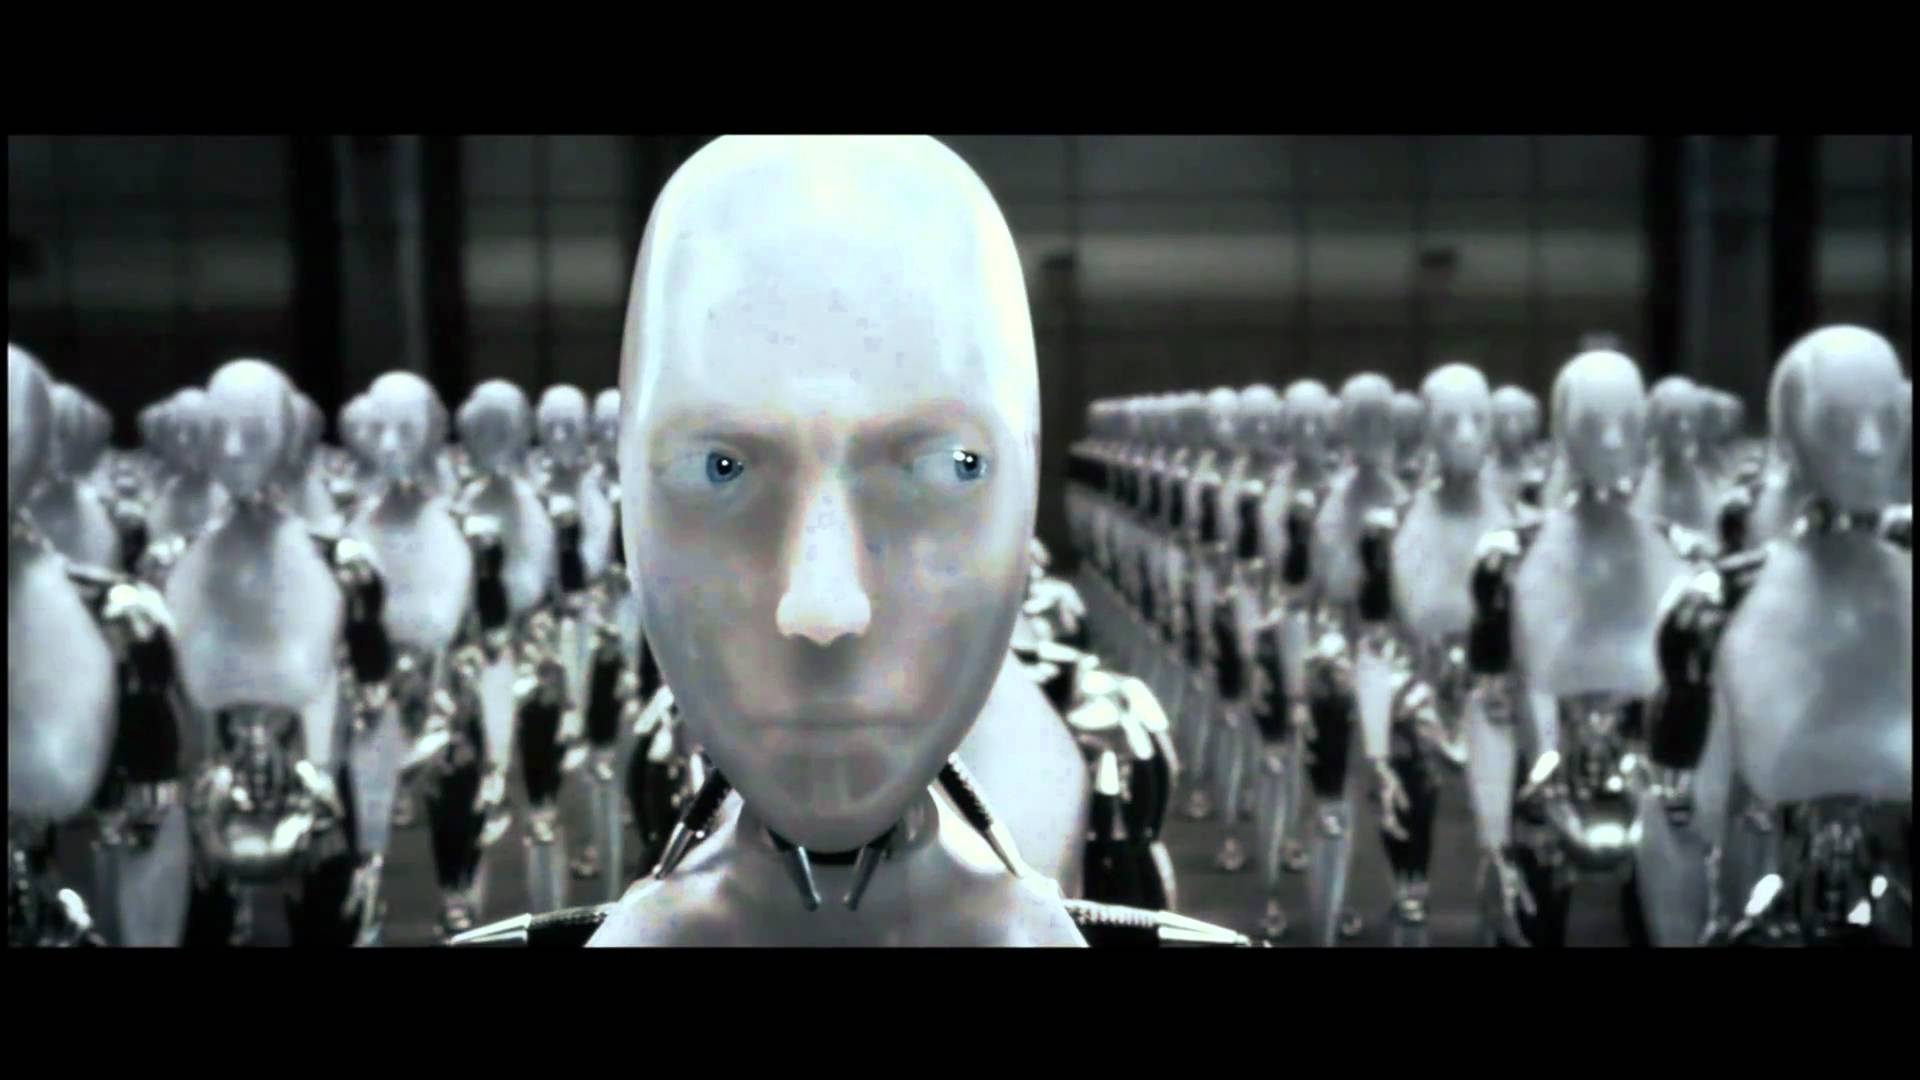 iRobot Screening